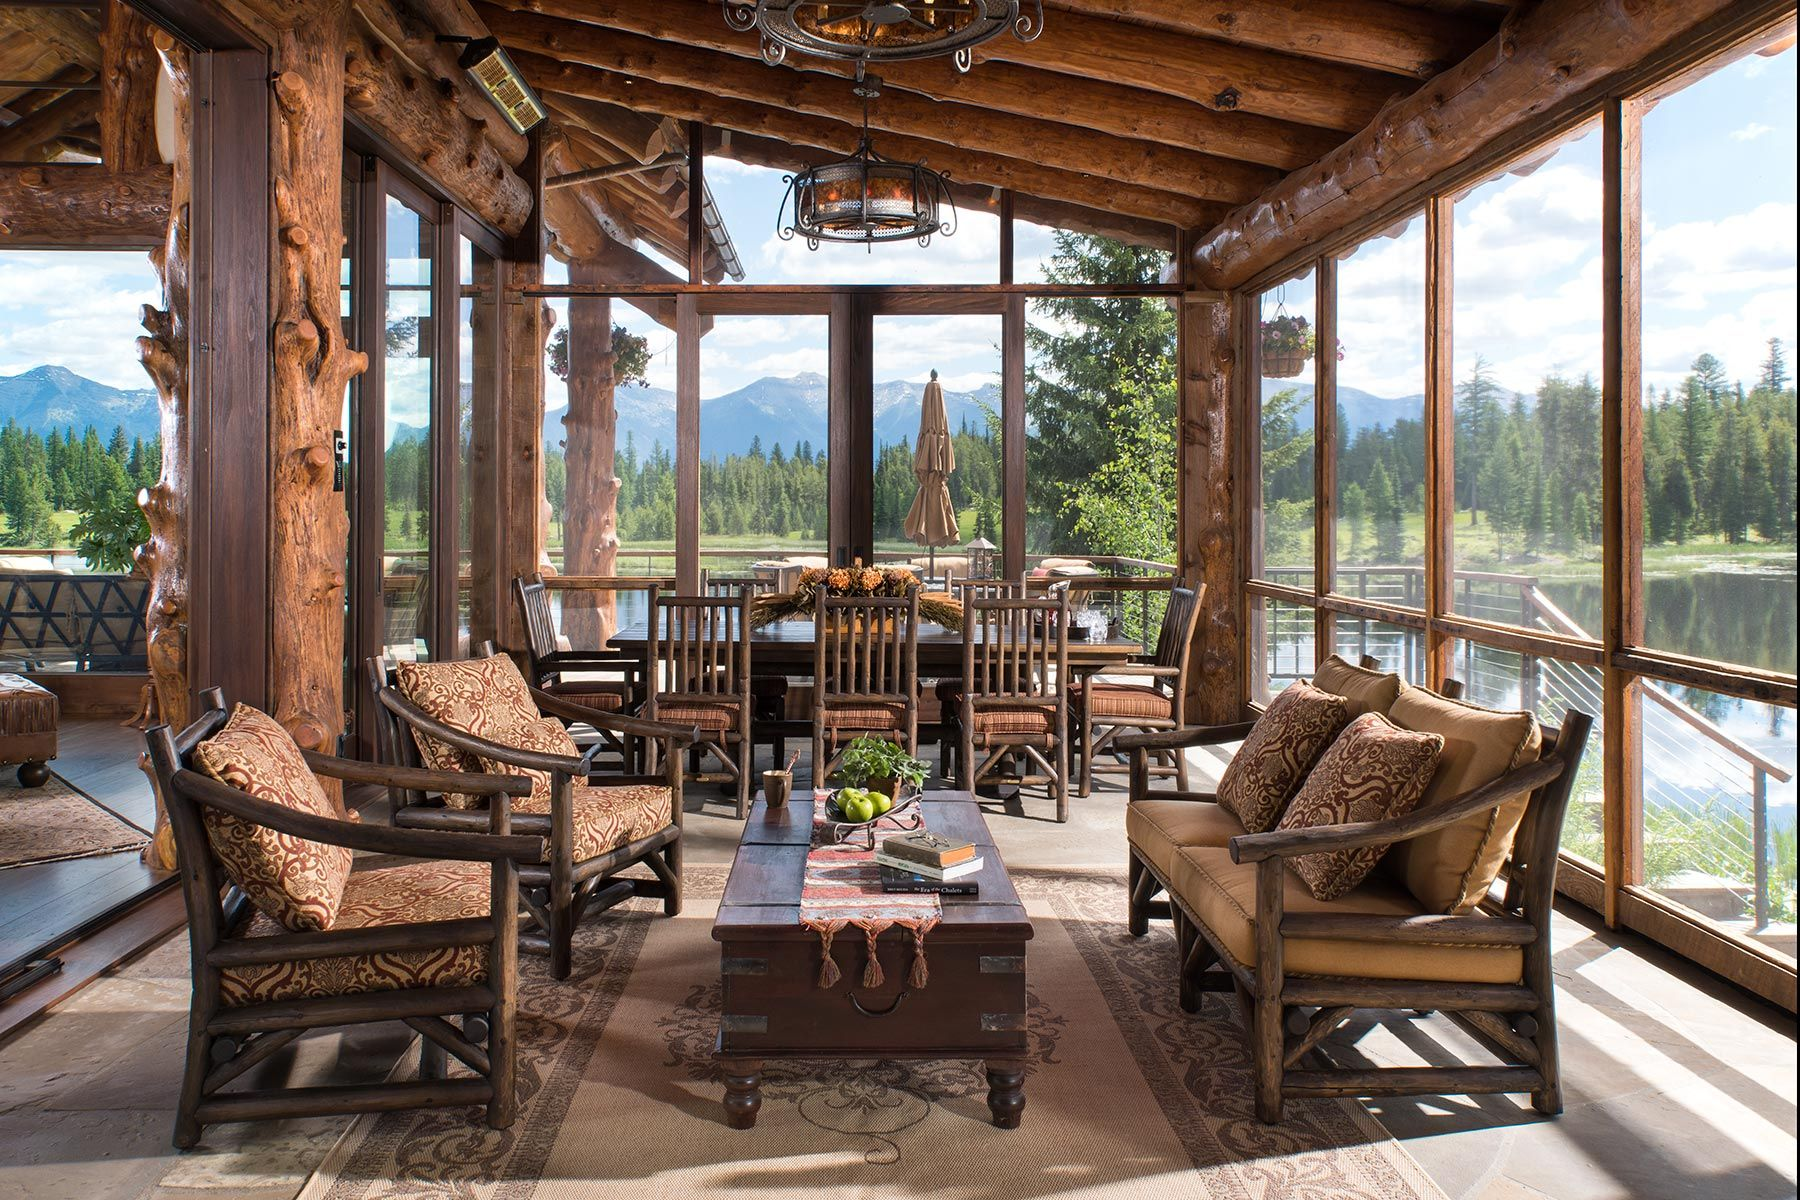 Screened Porch, Swan Valley, MT